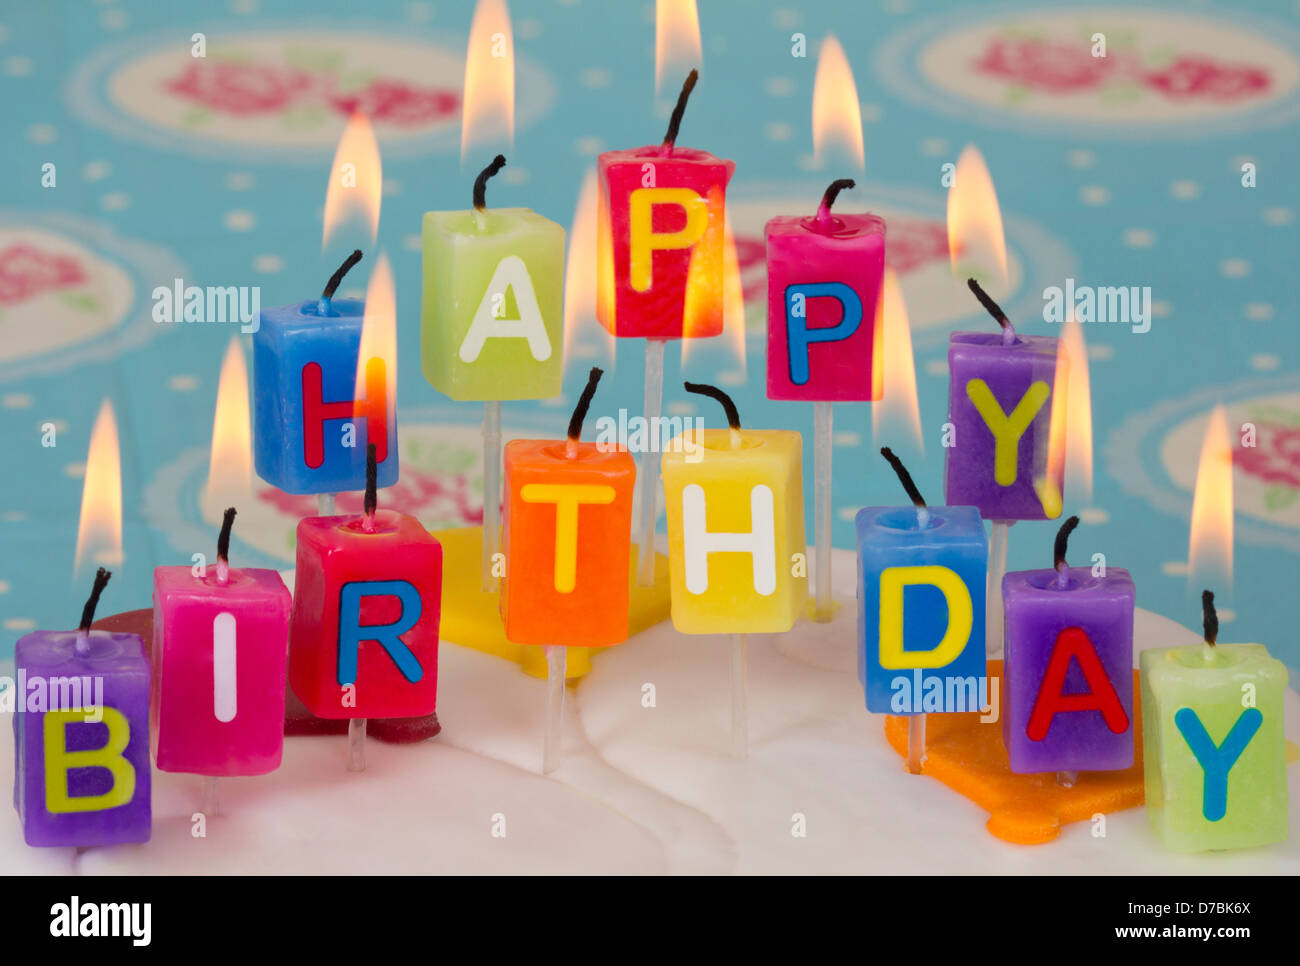 Happy Birthday Candles On Cake With Blue And Floral Background